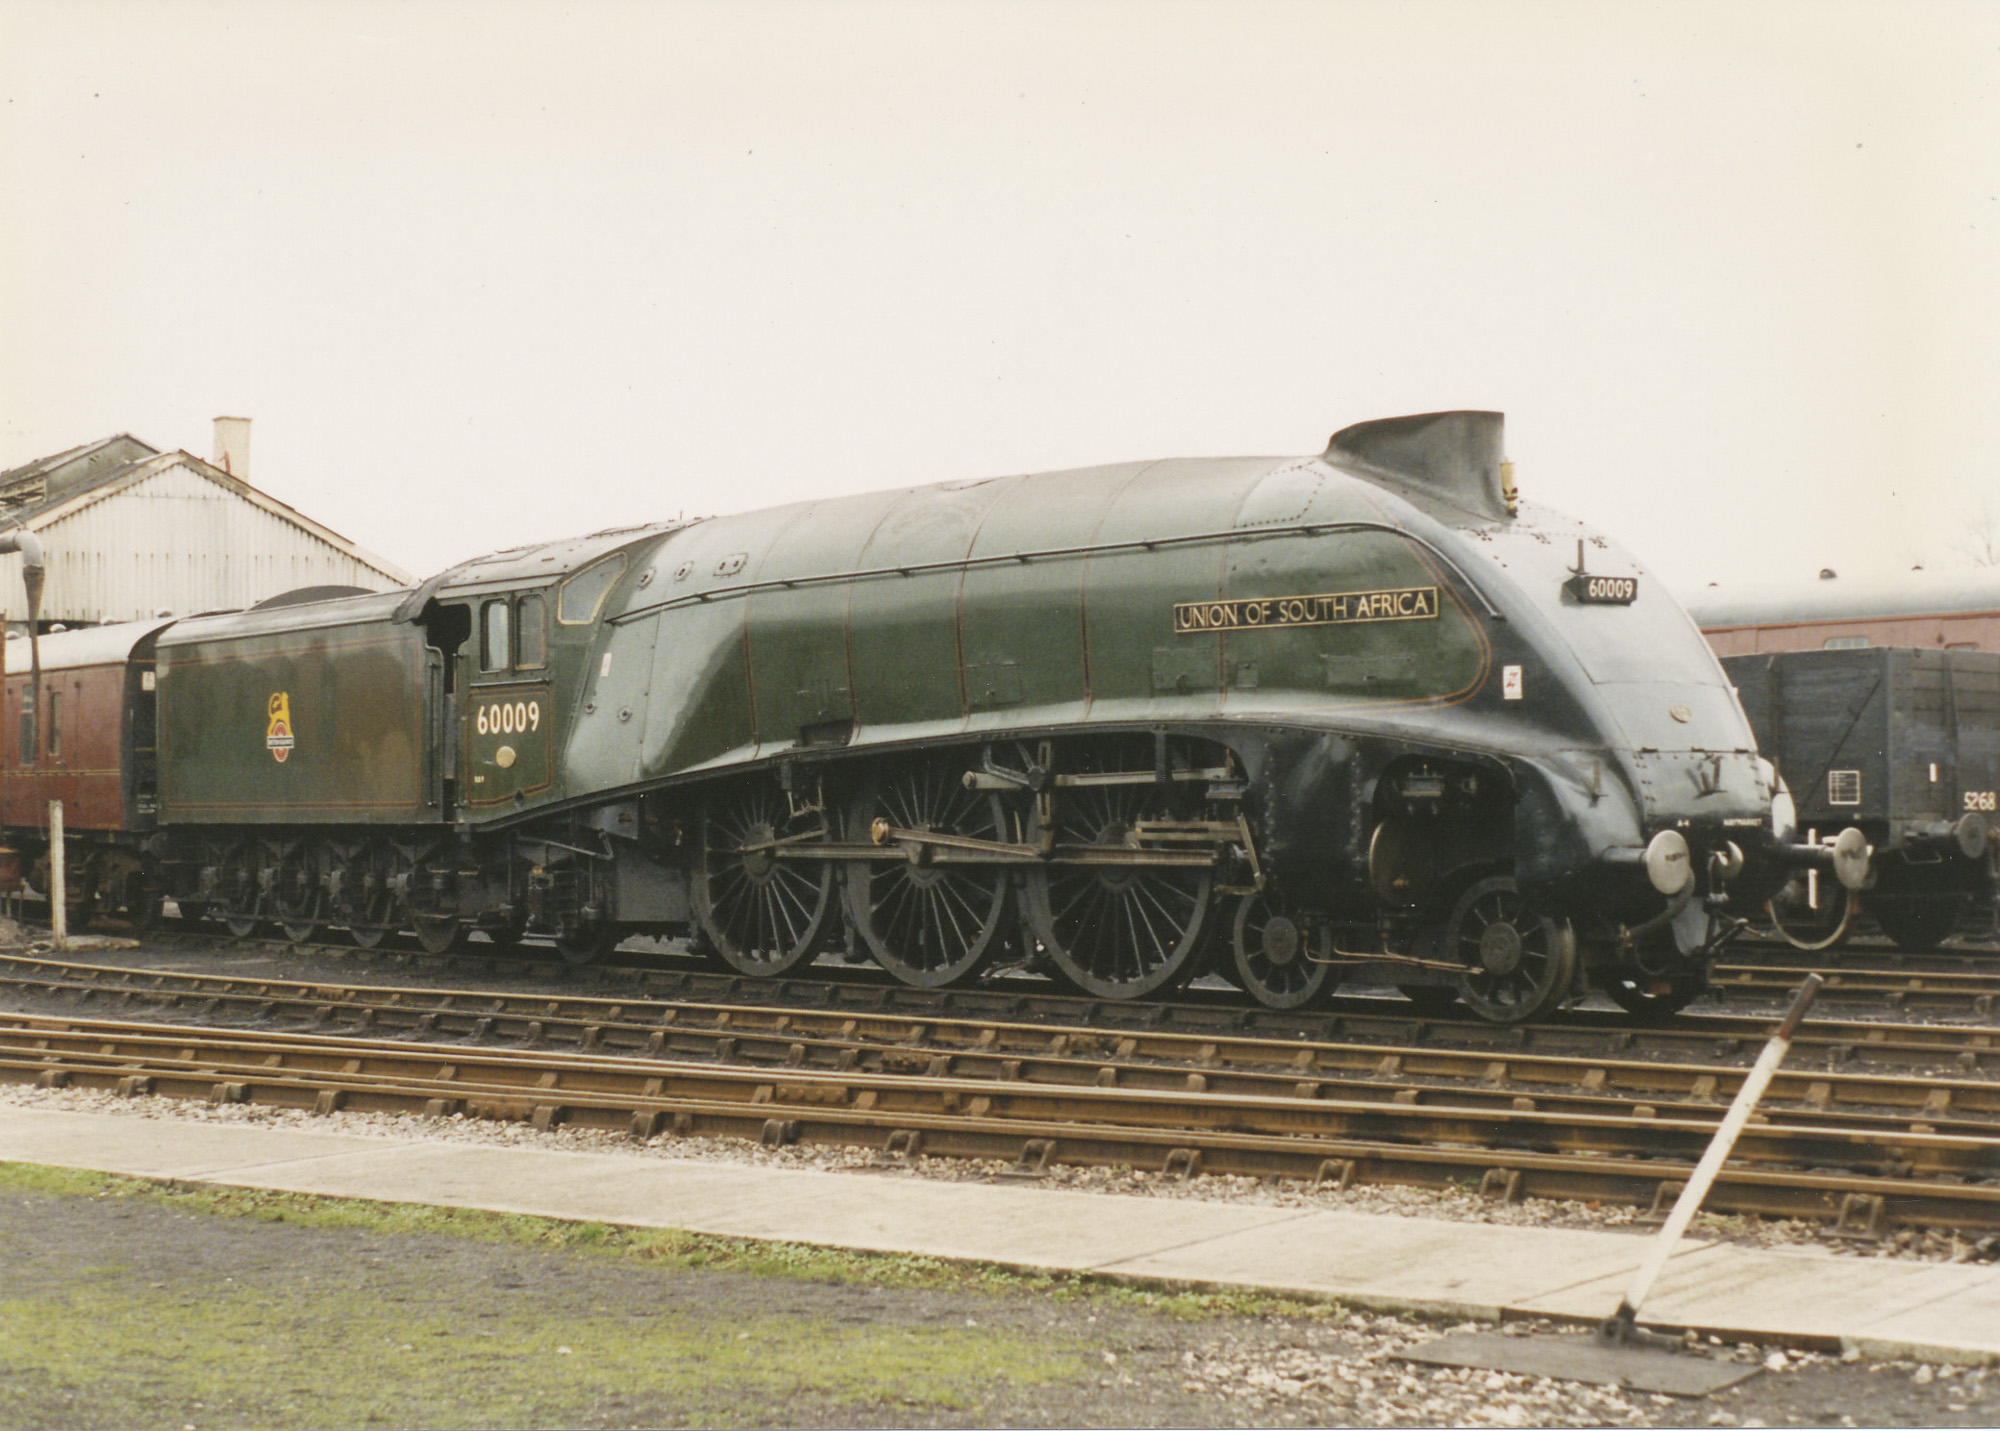 60009 Union of South Africa. © Bob Robson/6024 PS Ltd